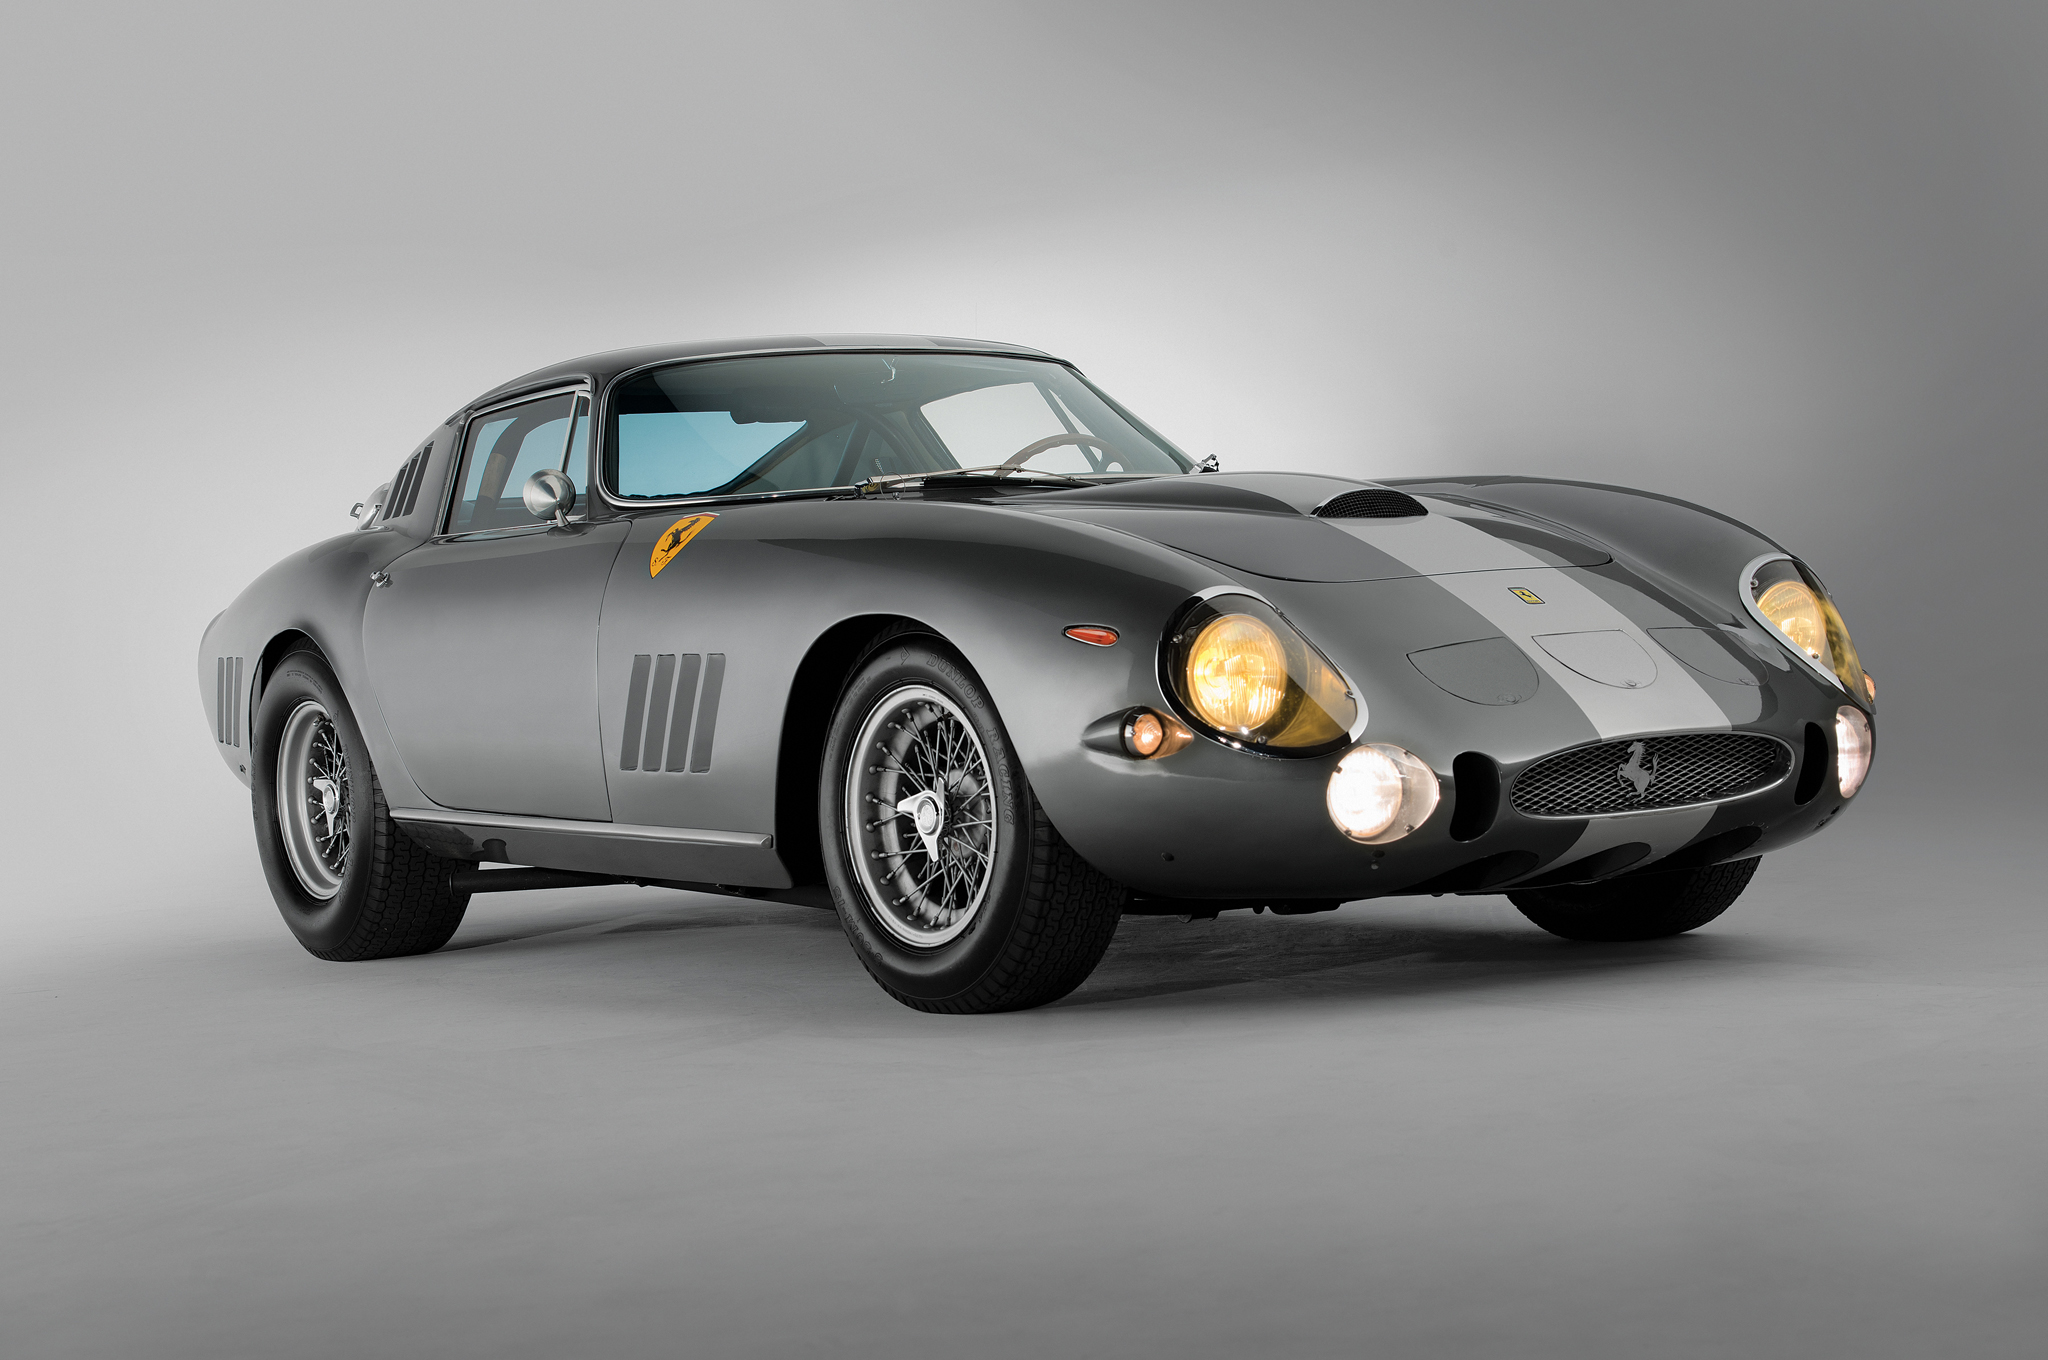 One of Three 1964 Ferrari 275 GTB/C Speciale Coupes Heads to Auction